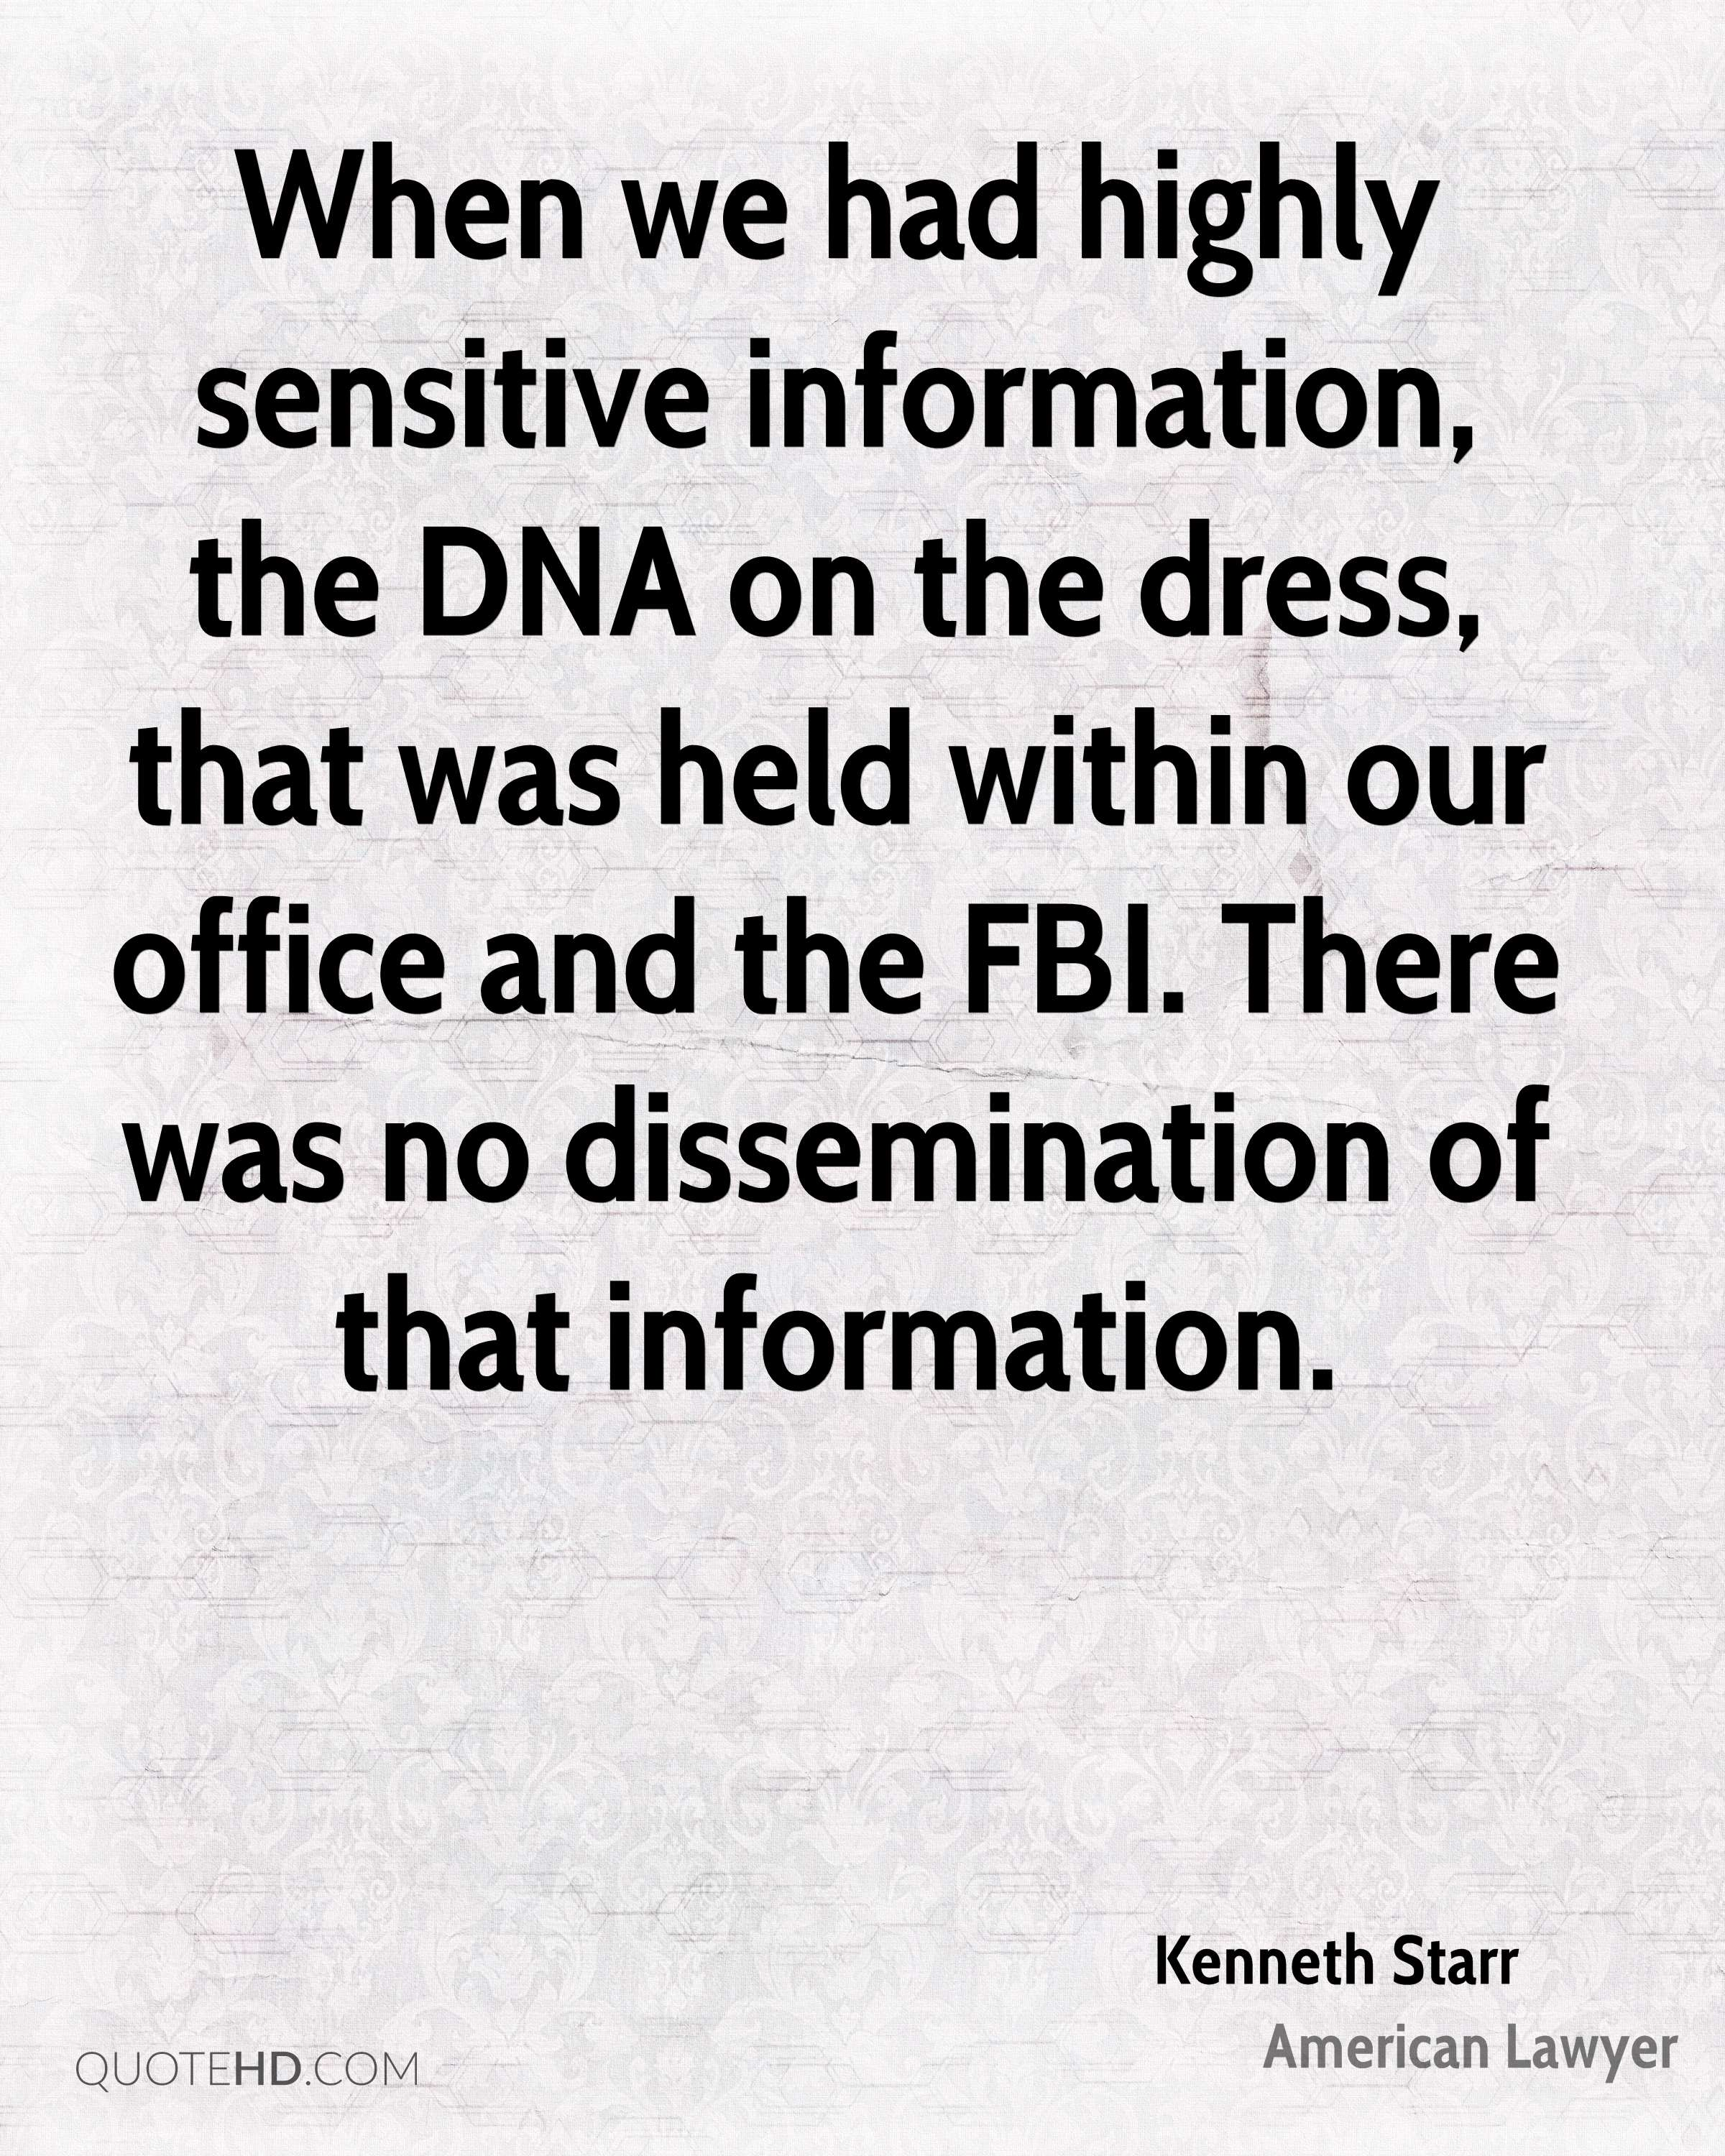 When we had highly sensitive information, the DNA on the dress, that was held within our office and the FBI. There was no dissemination of that information.